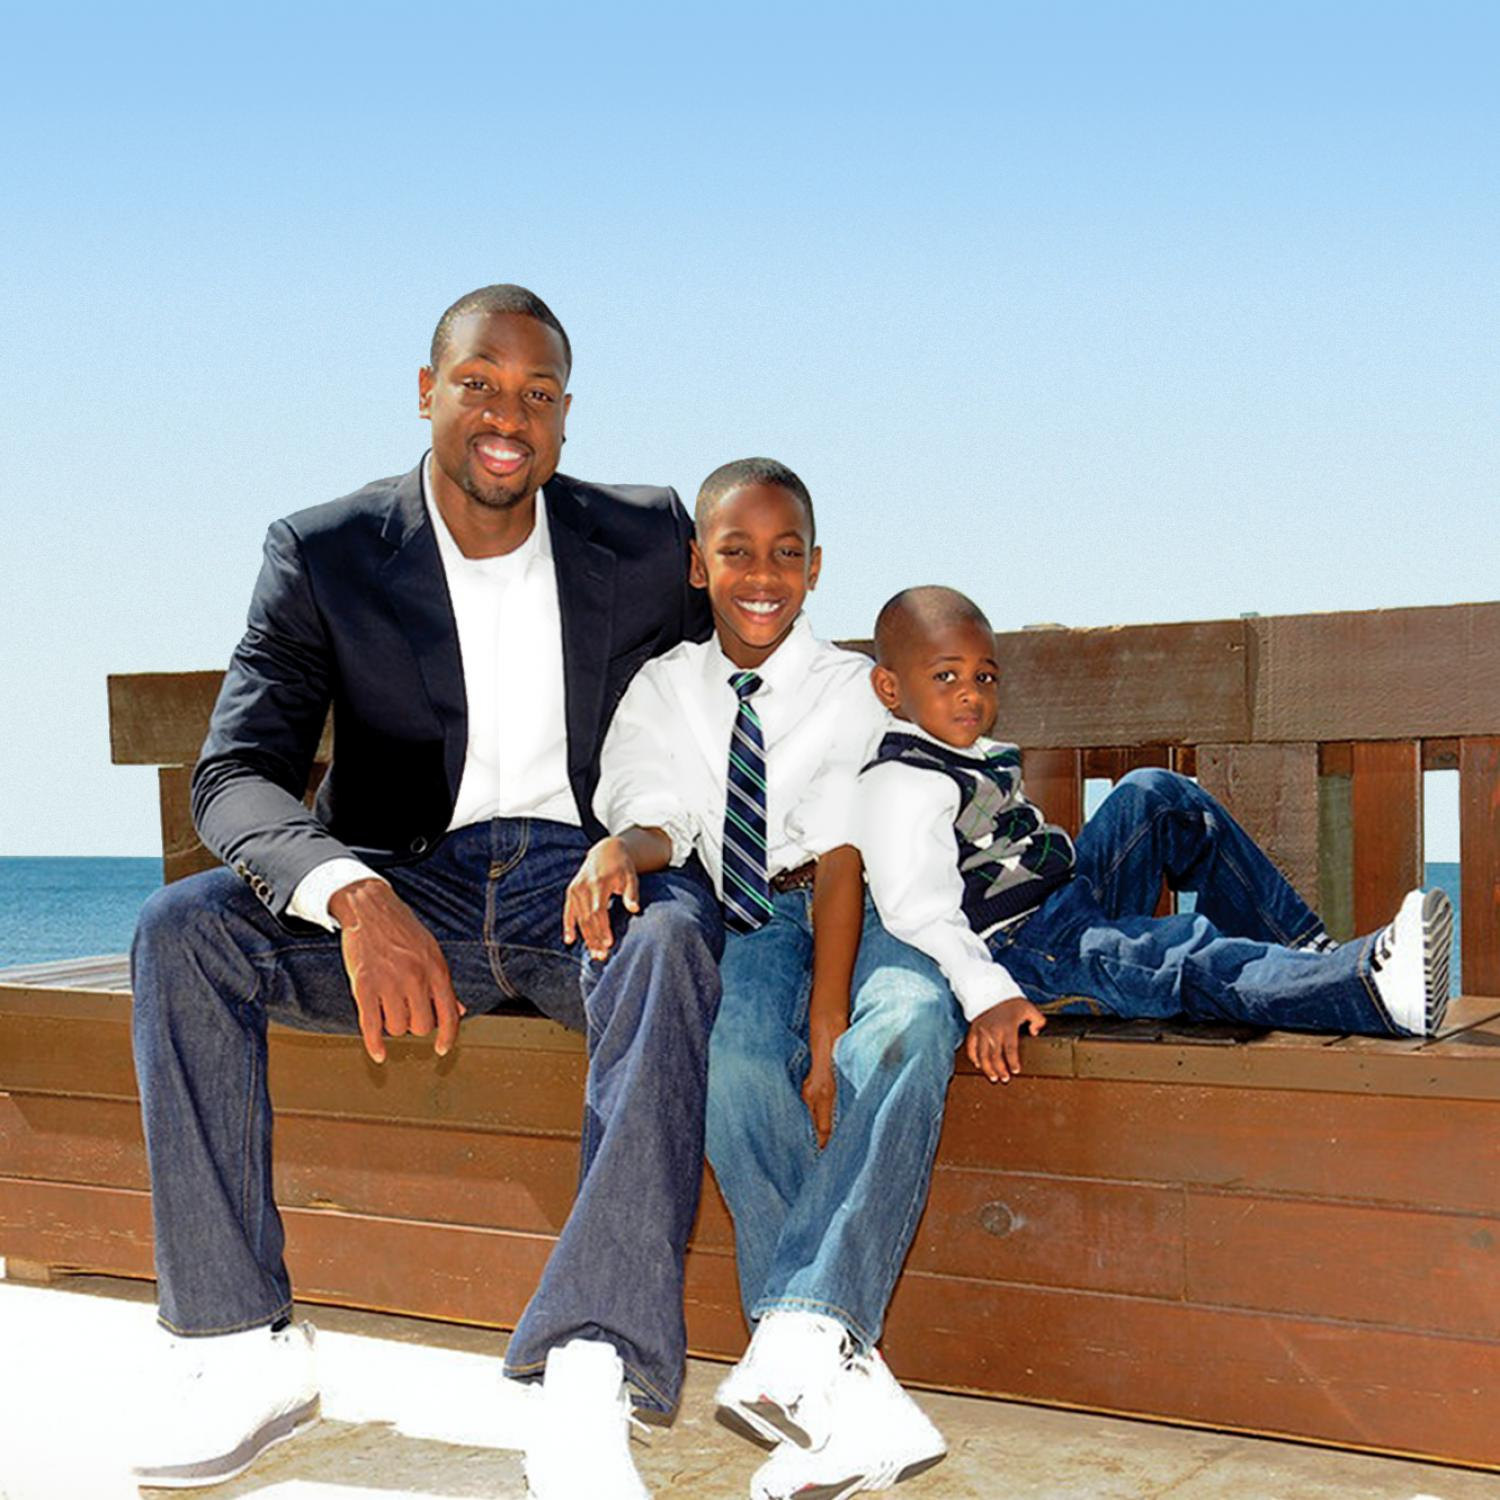 Dwyane Wade And His Family – Daily Motivational Quotes